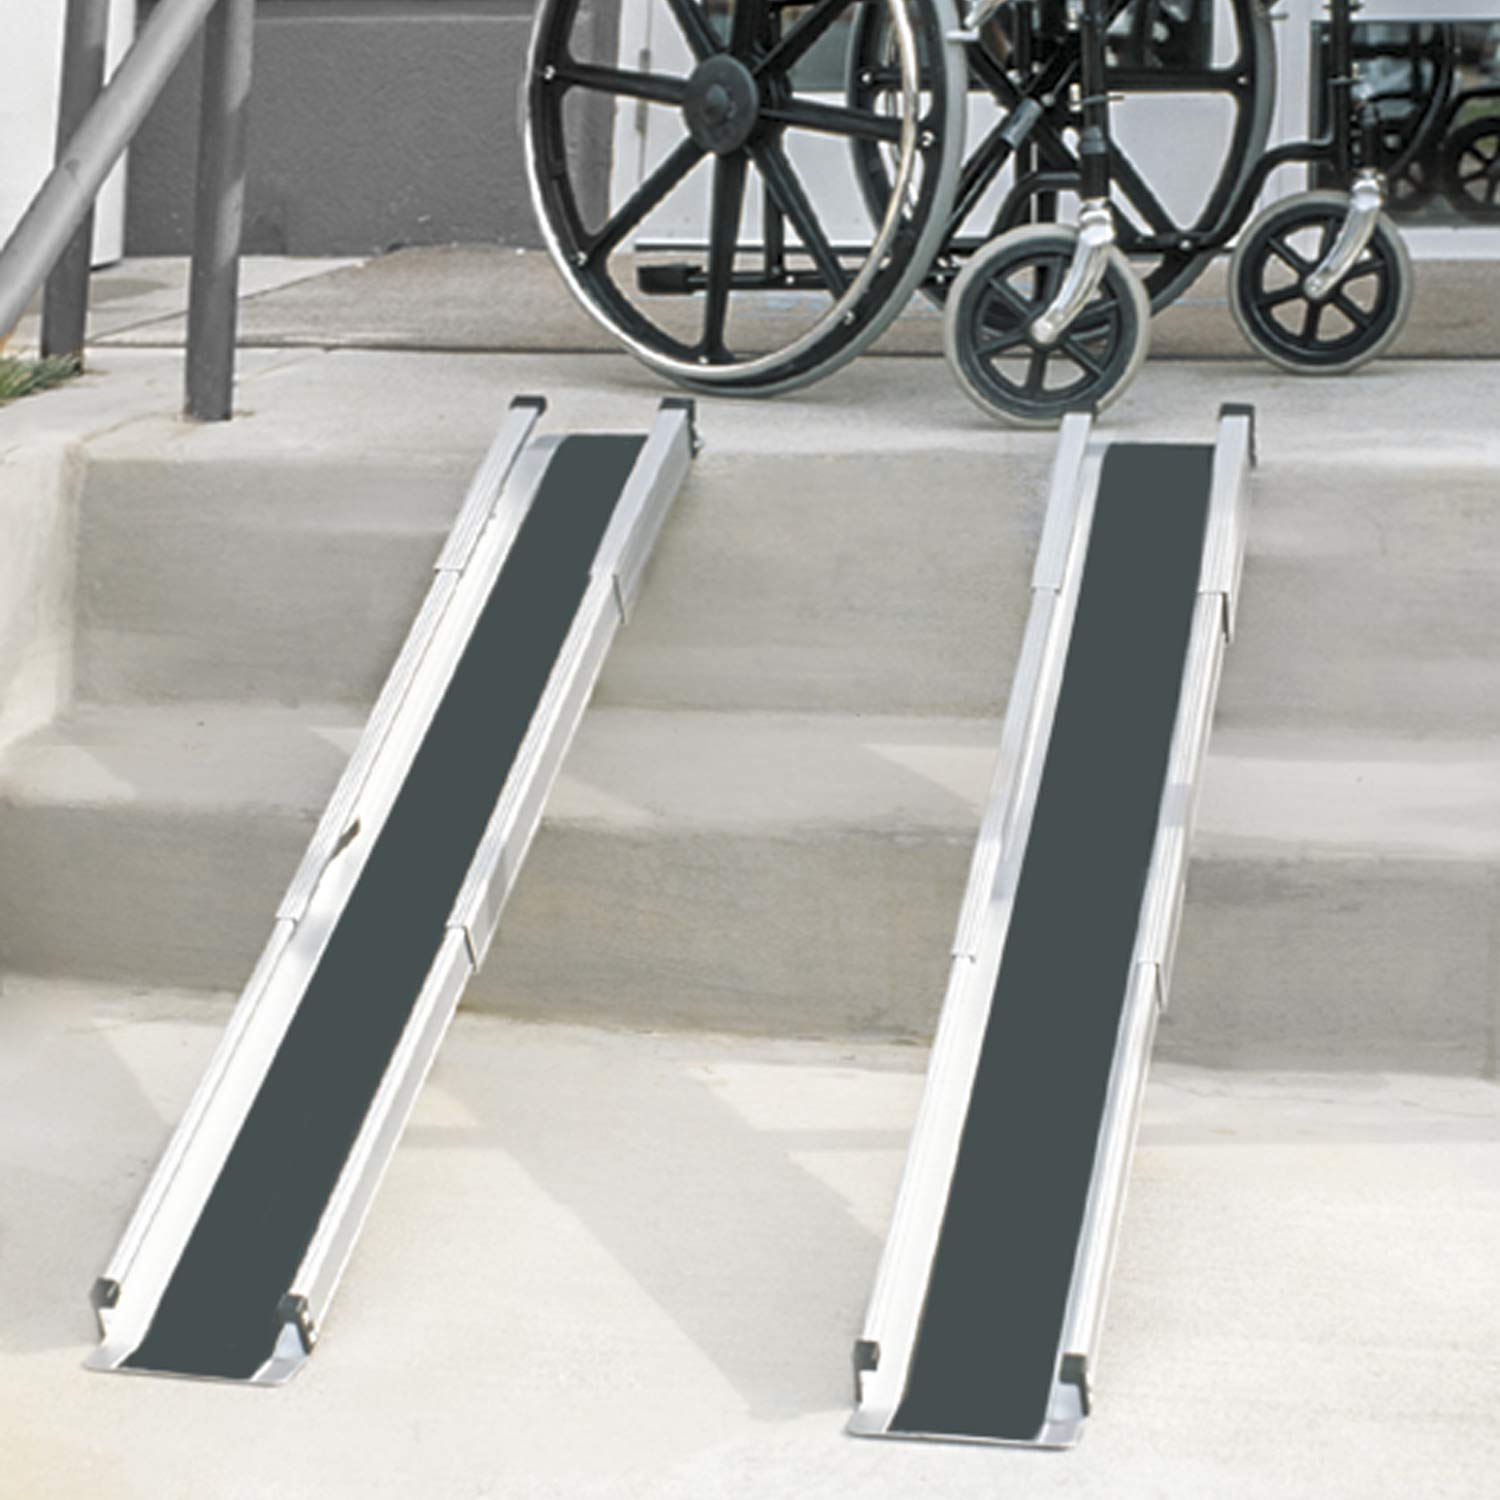 DMI Portable Wheelchair Ramp for Home, Van, Steps, Adjustable Telescoping Retractable Lightweight Wheelchair Ramp with Cover, Adjustable Length from 3 to 5 Feet, 4.5 Inch Inside Width